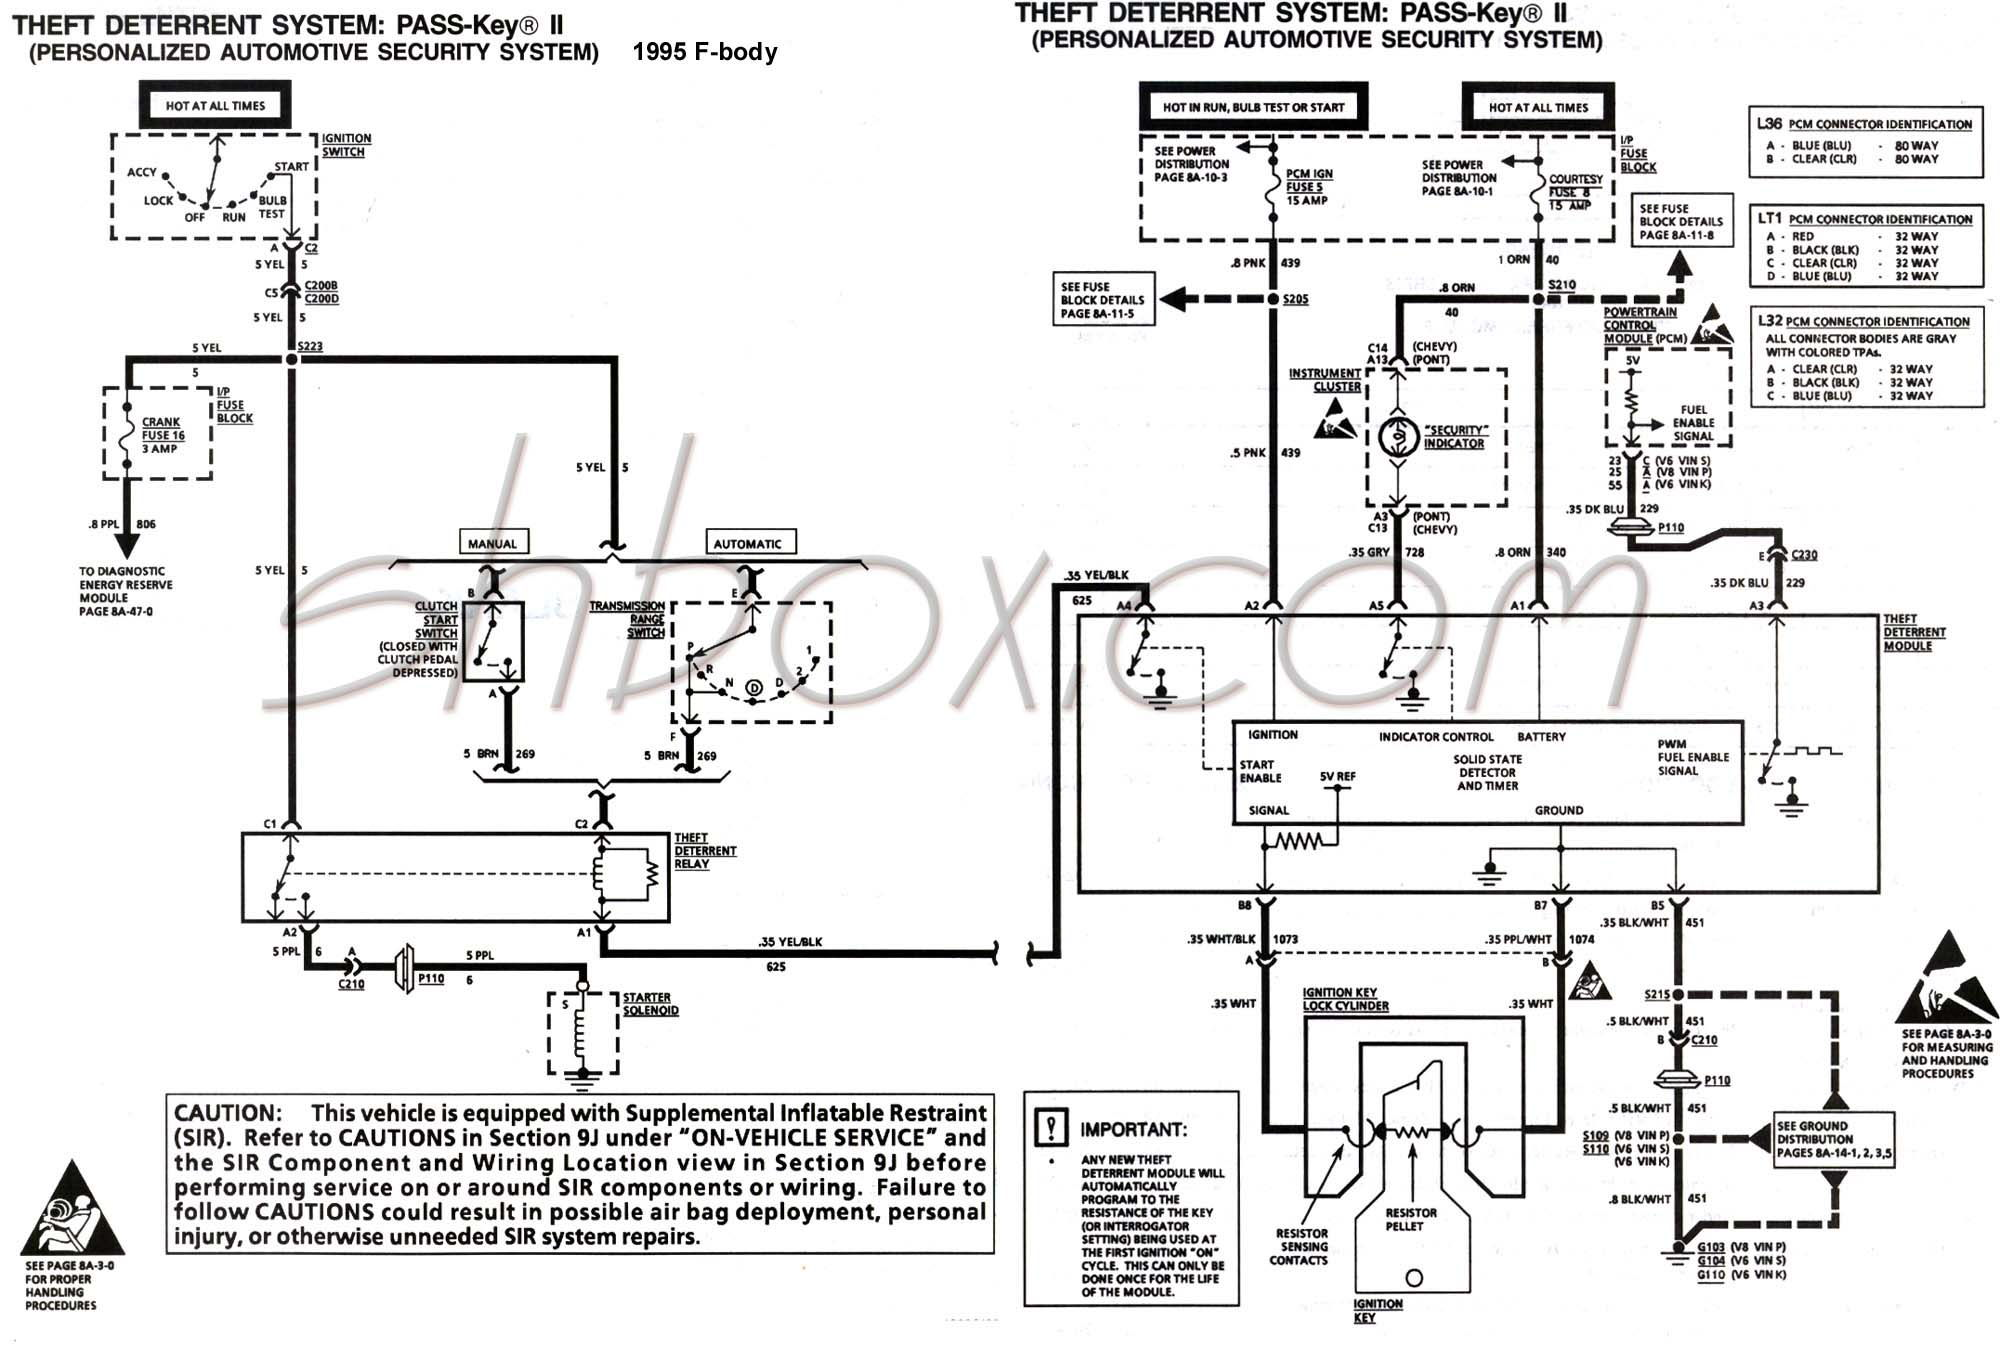 1750764 Can I Crank Without Pass Key Use Bcm on auto ignition diagram